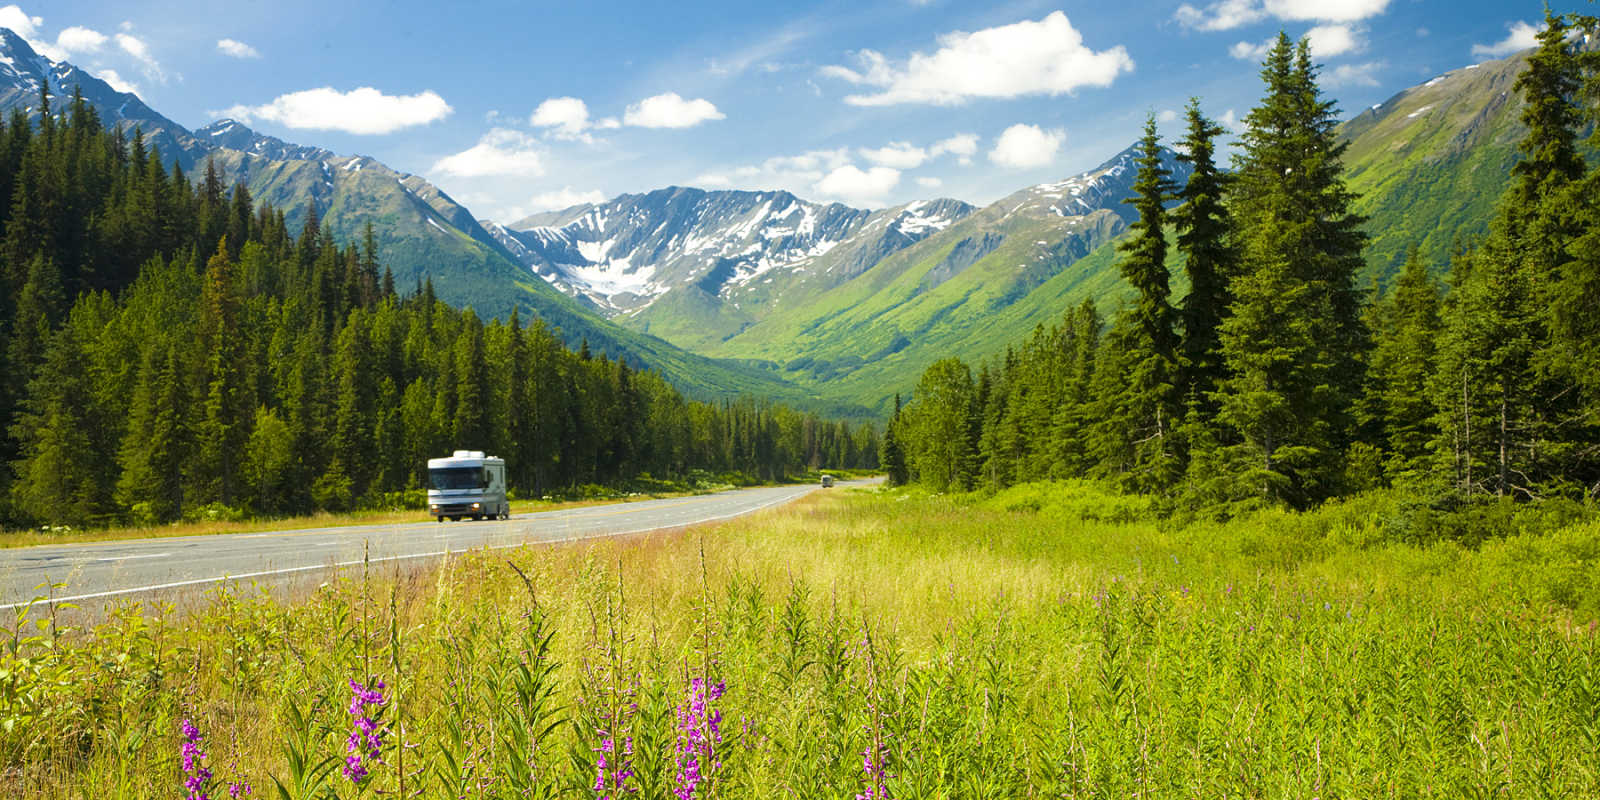 Alaska RV tours and scenic trips near Anchorage